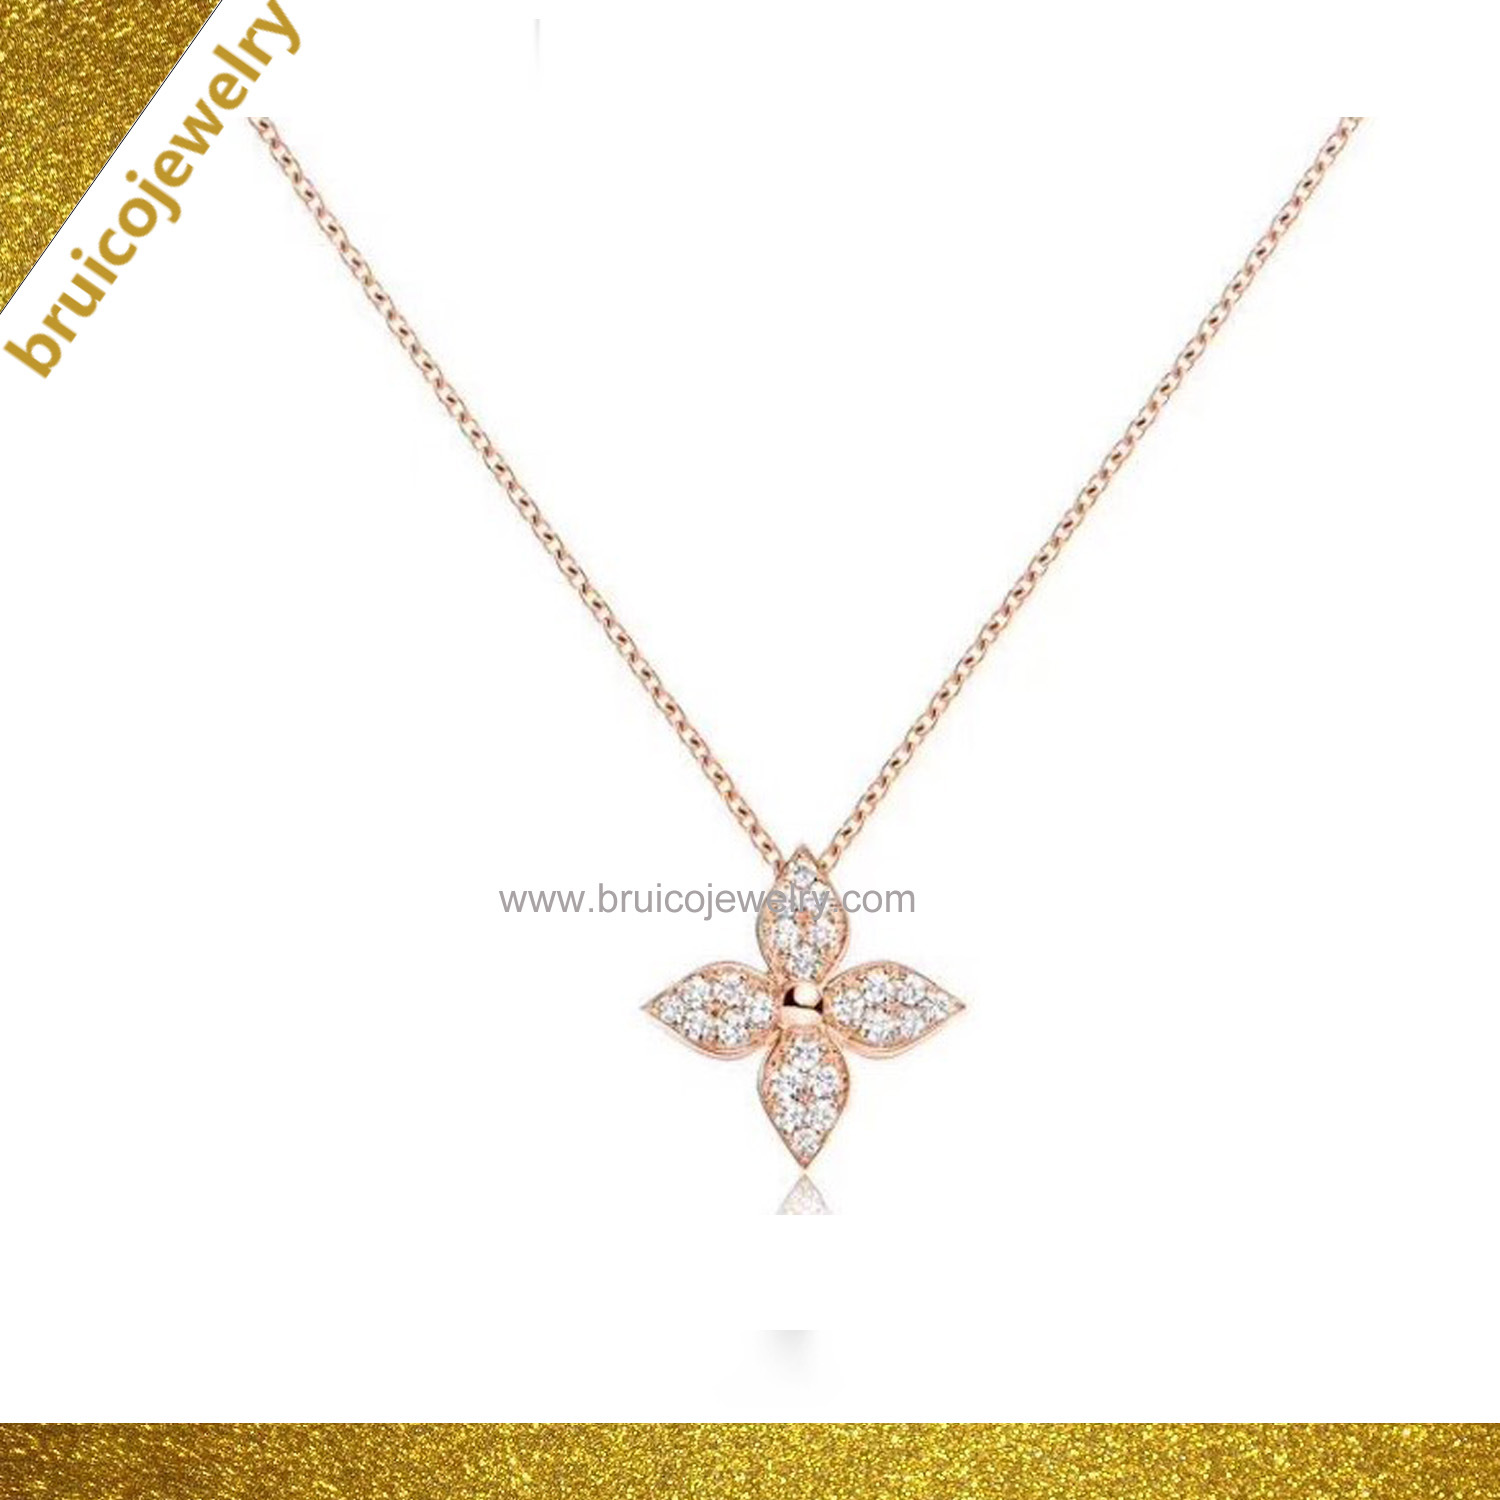 China 2019 Popular Fashion Jewelry Design Pendant With Pave Flower